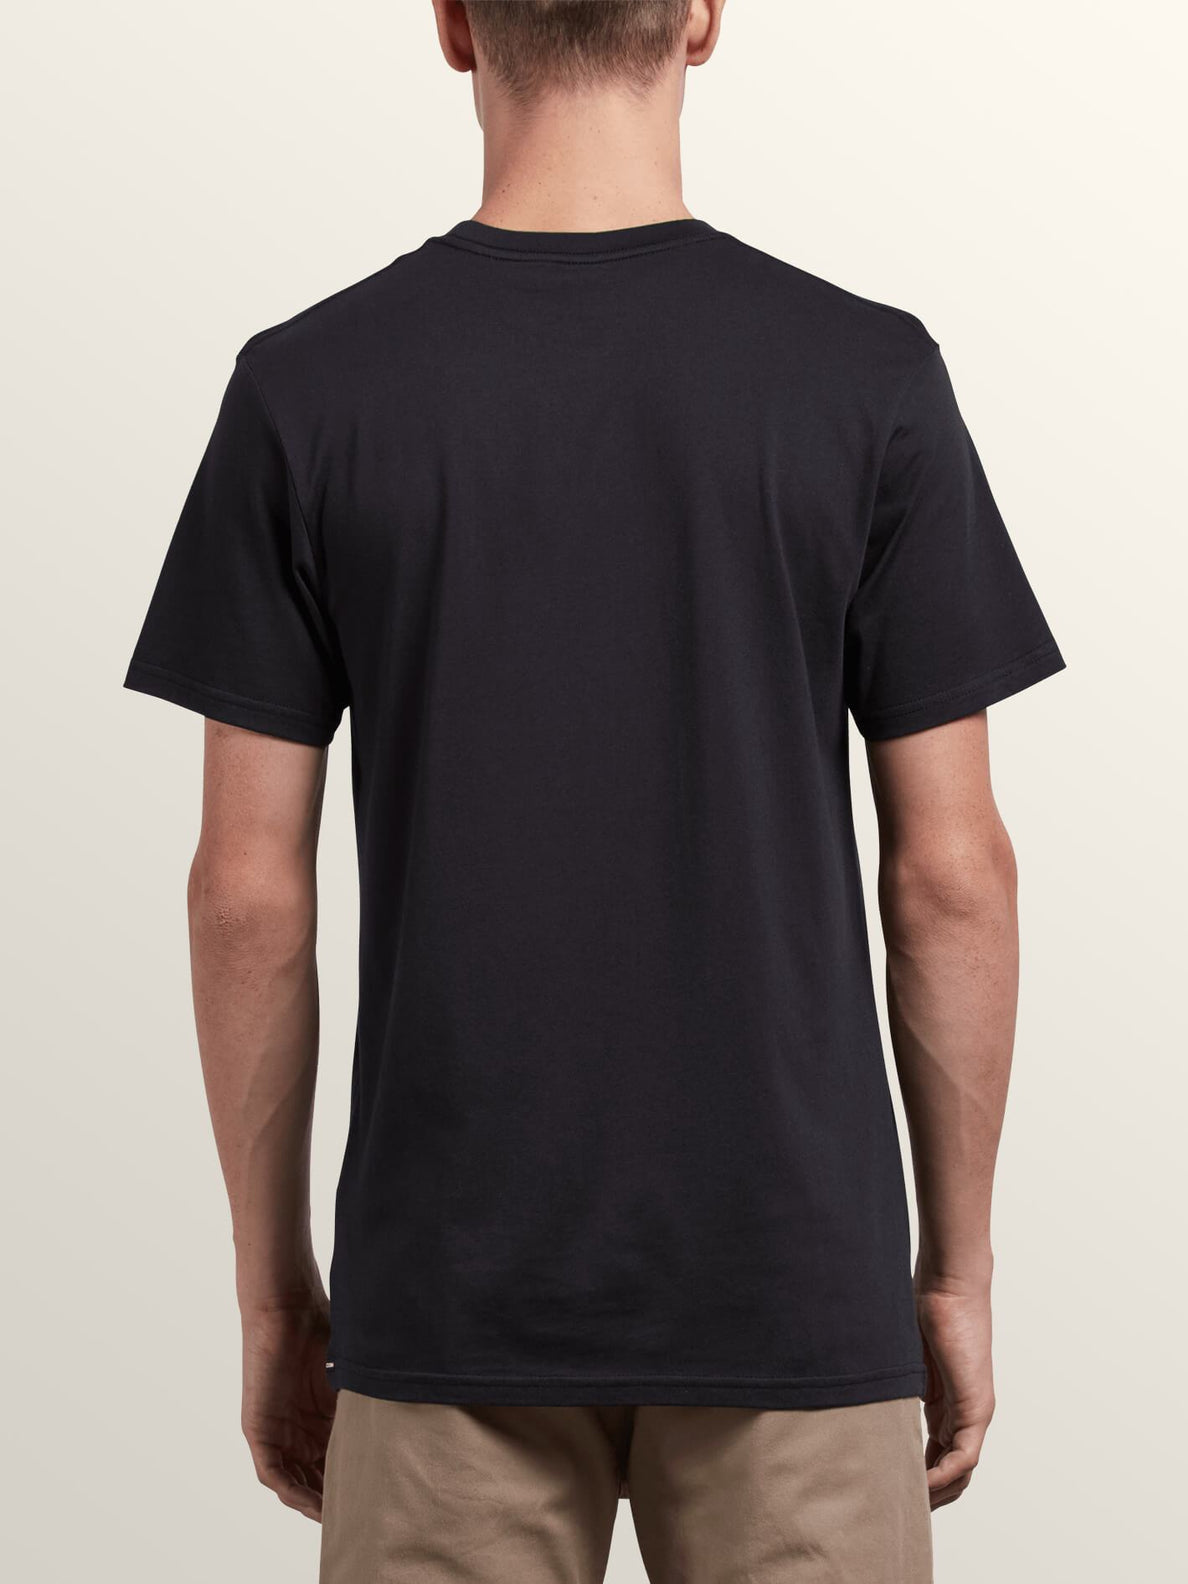 Extrano Short Sleeve Tee In Black, Back View